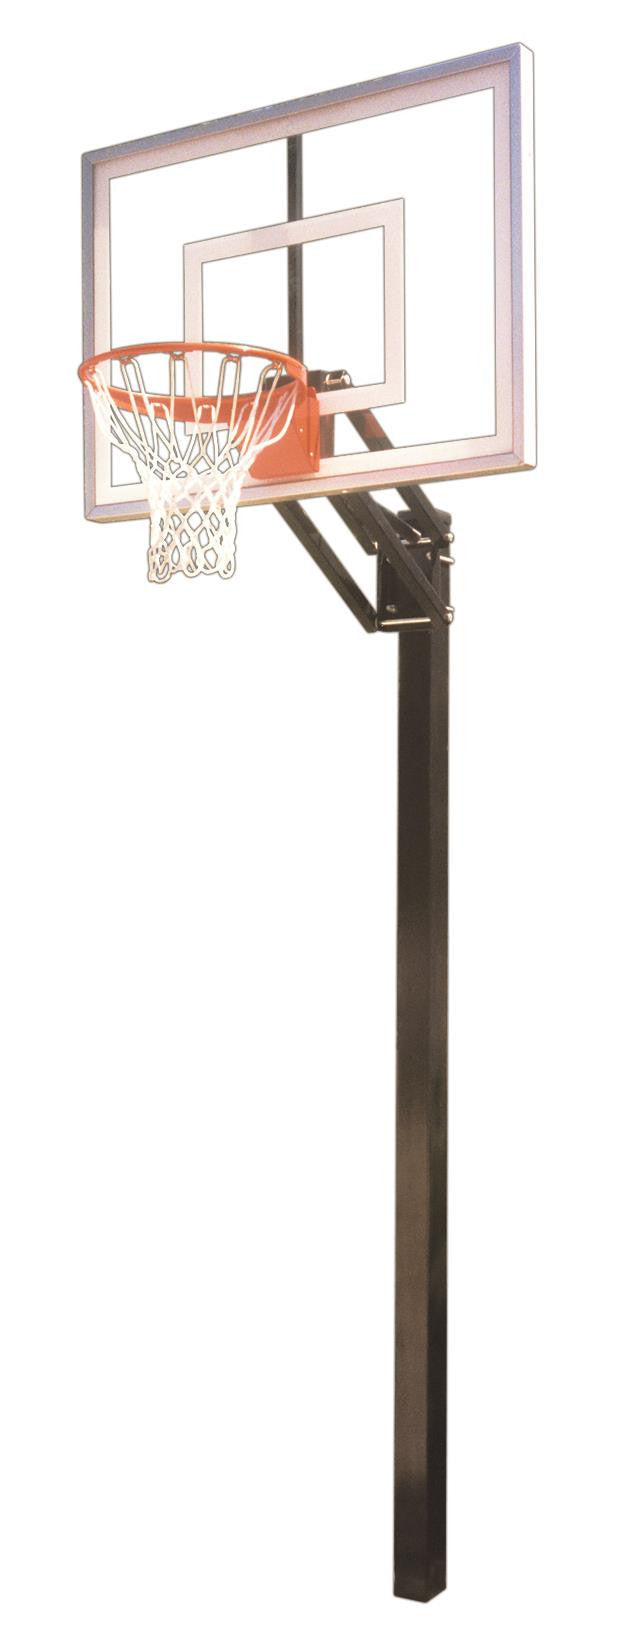 First Team Champ Turbo In Ground Outdoor Adjustable Basketball Hoop 54 inch Tempered Glass